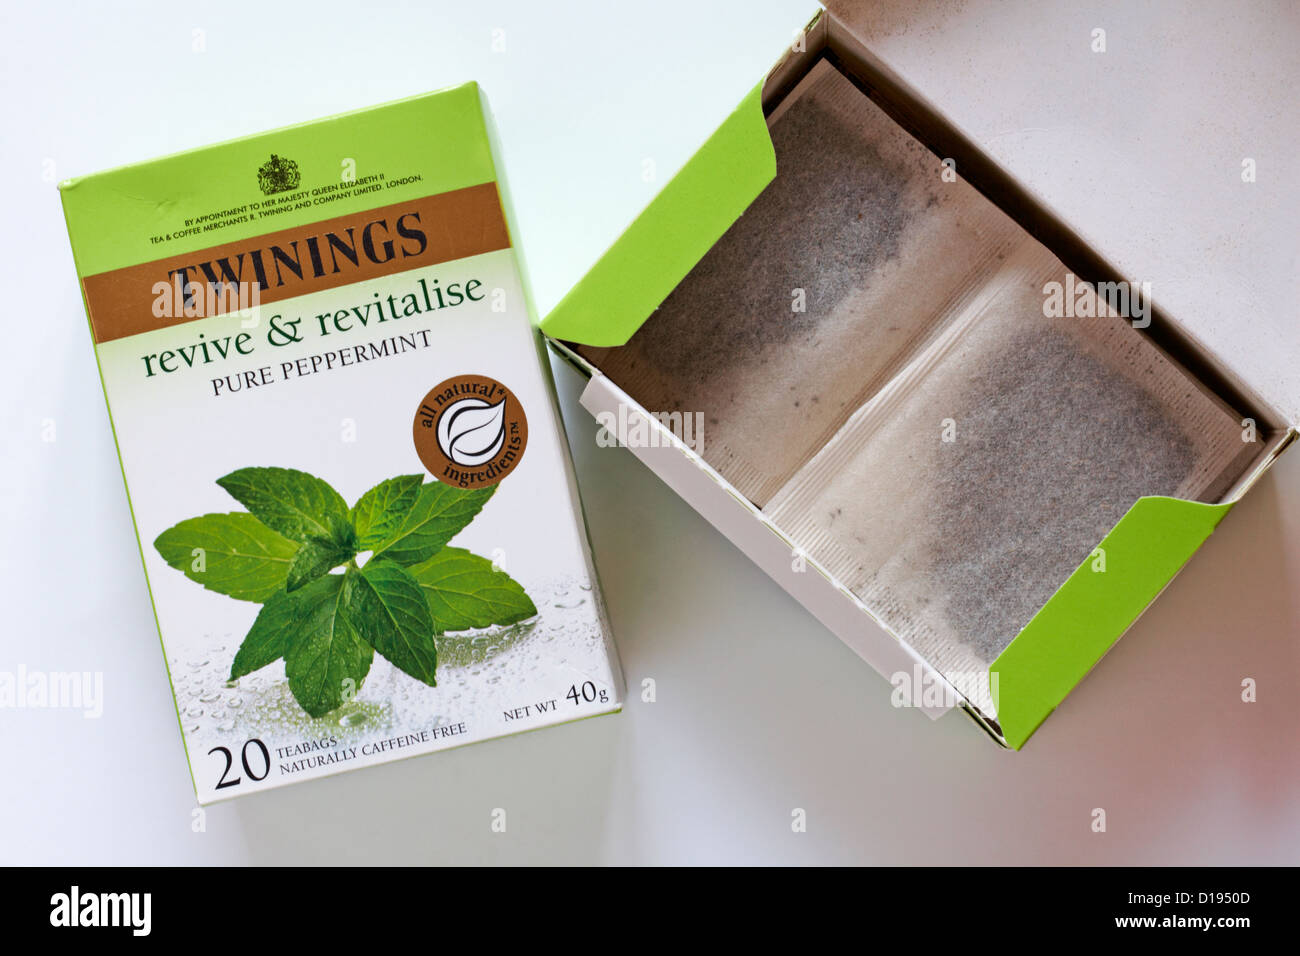 Twinings tea bags teabags - revive & revitalise pure peppermint on white background - Stock Image